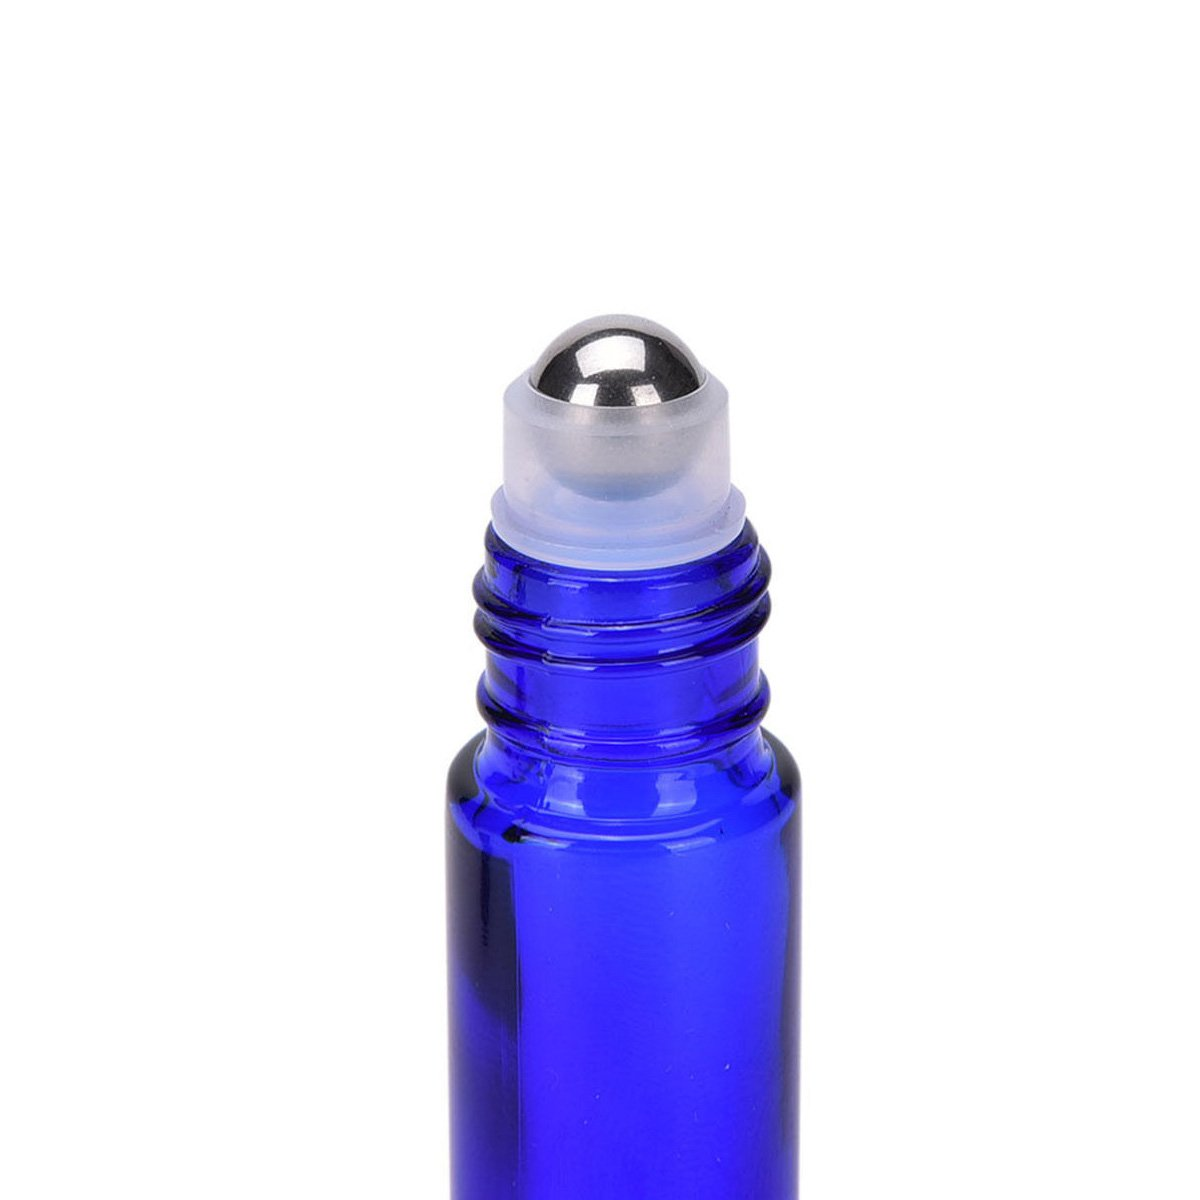 YAMU 10ML Cobalt Blue Glass Roll-on Bottles With Stainless Steel Roller Balls 24pcs